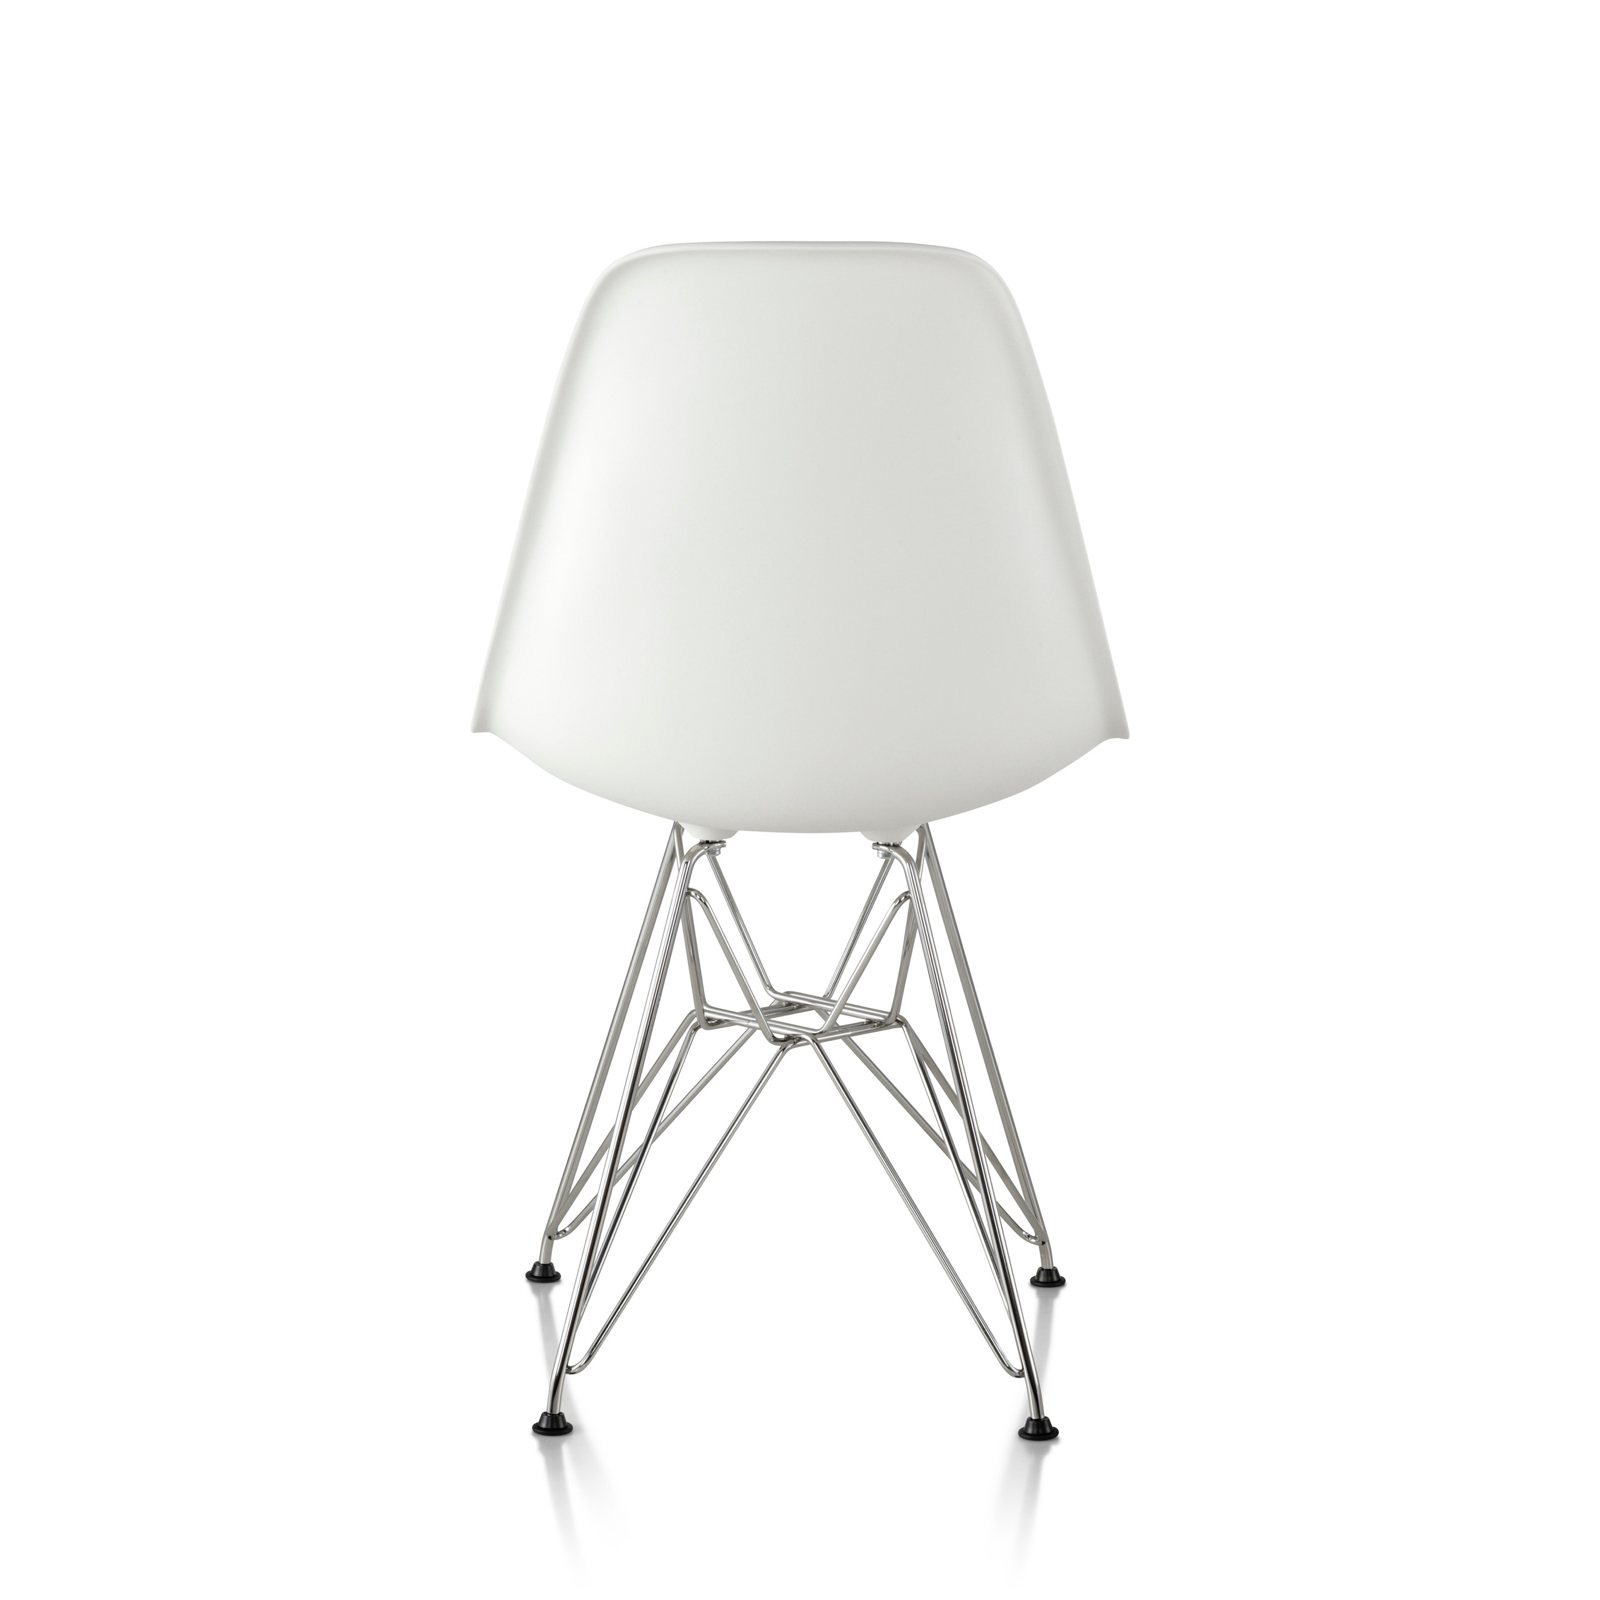 Eames Molded Plastic Side Chair Wire Base by Charles & Ray Eames